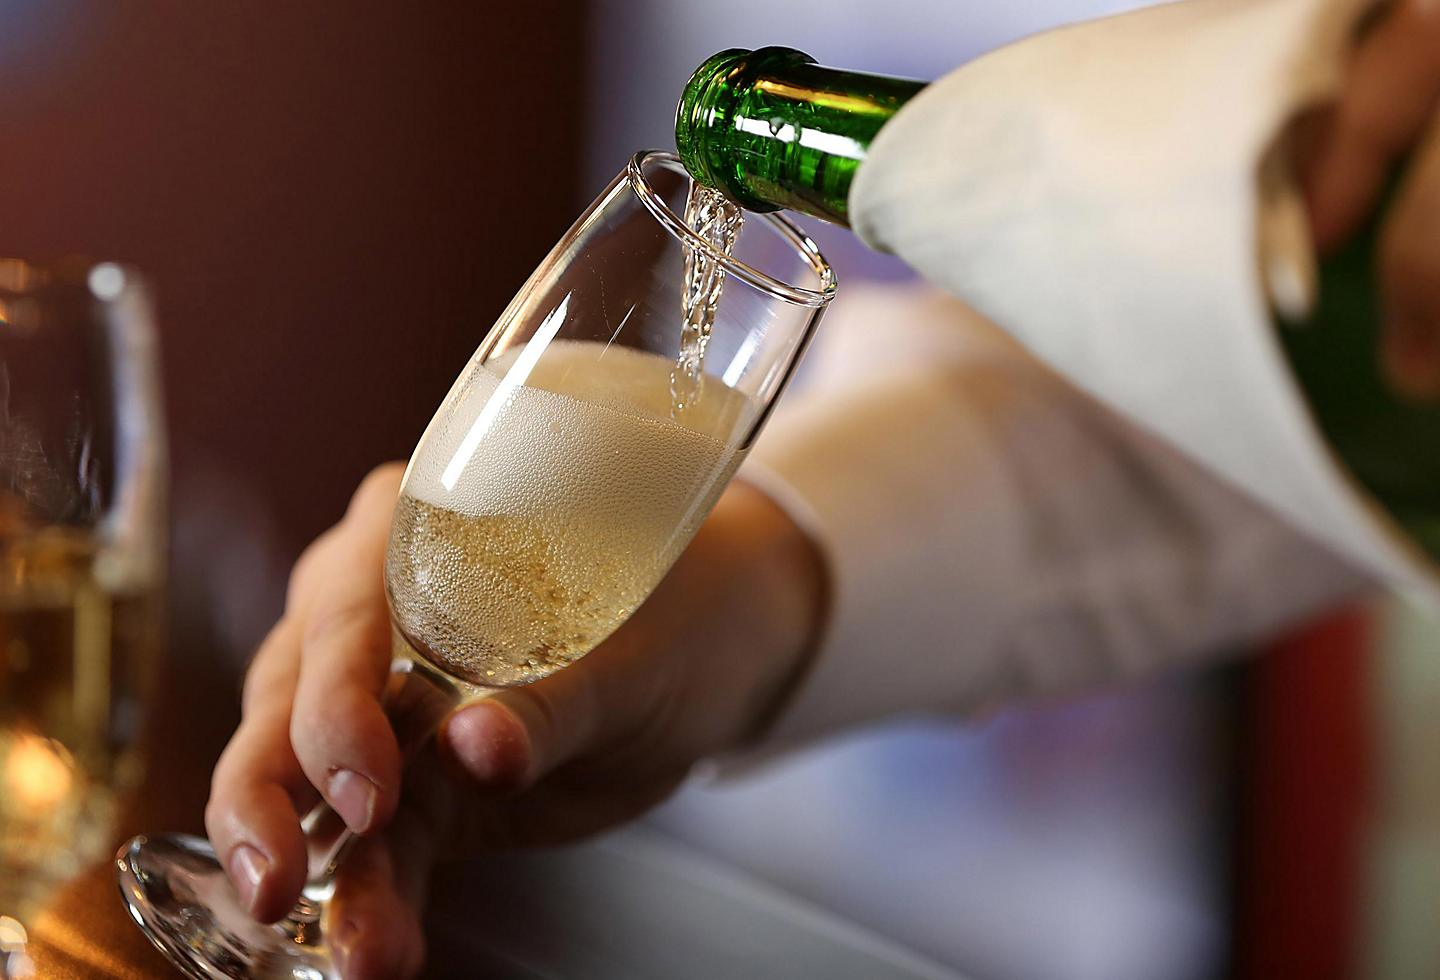 Champagne pouring for brunch